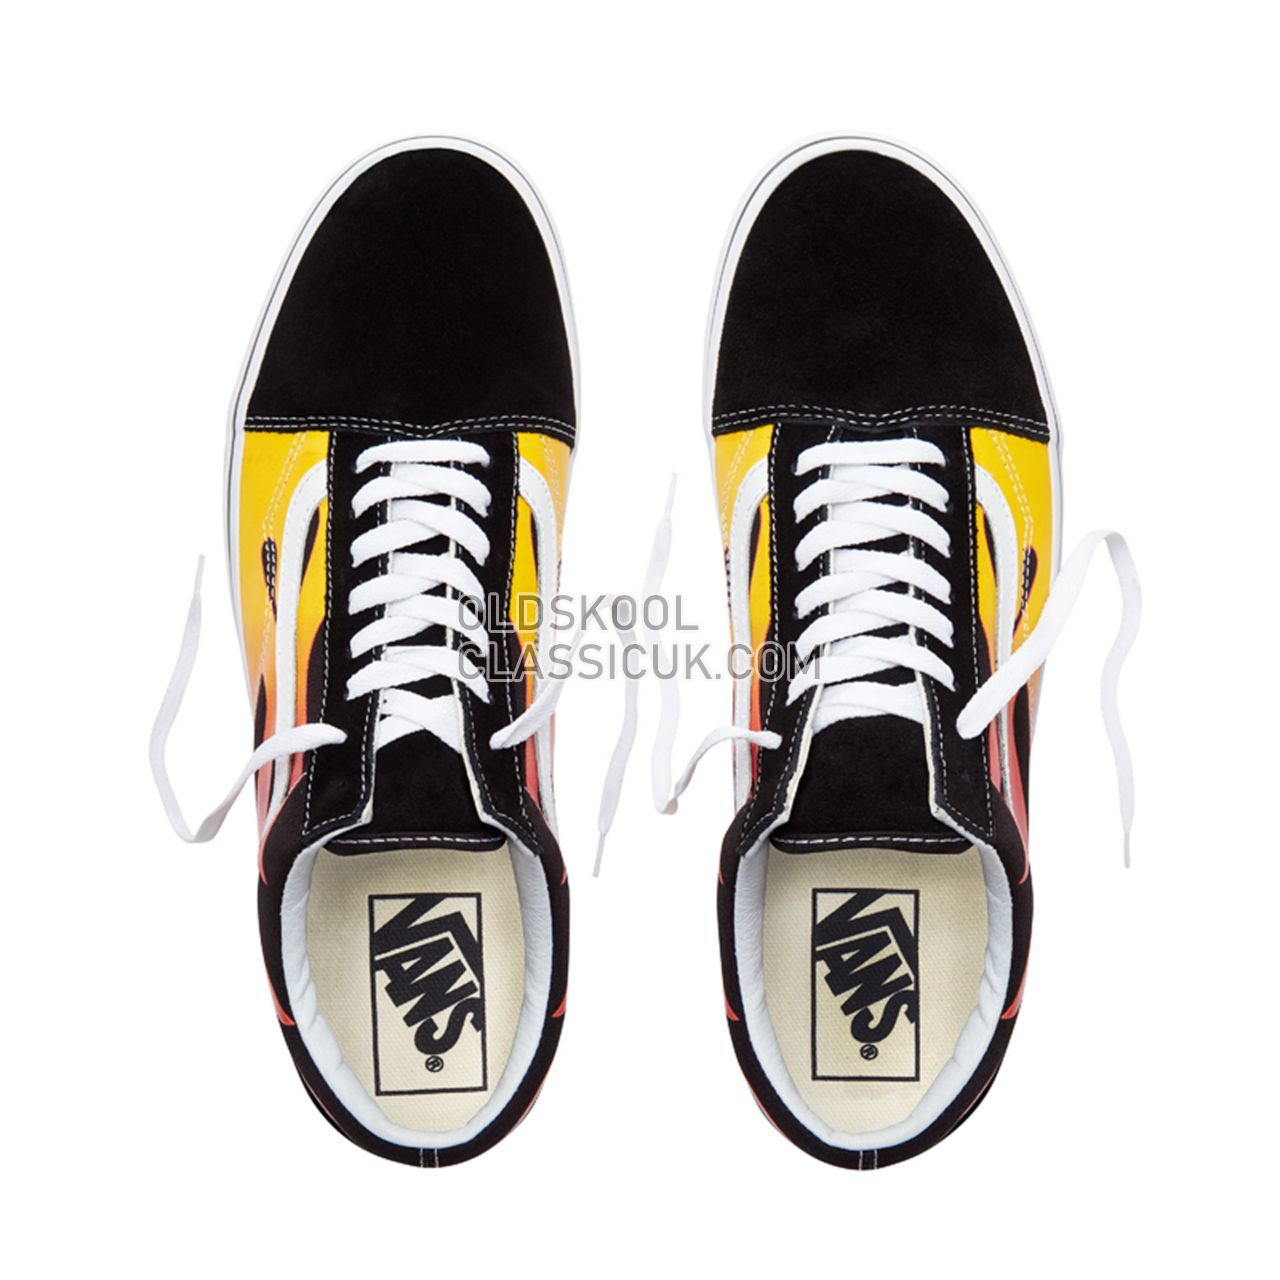 Vans Flame Old Skool Sneakers Mens Womens Unisex Black-True White VA38G1PHN Shoes